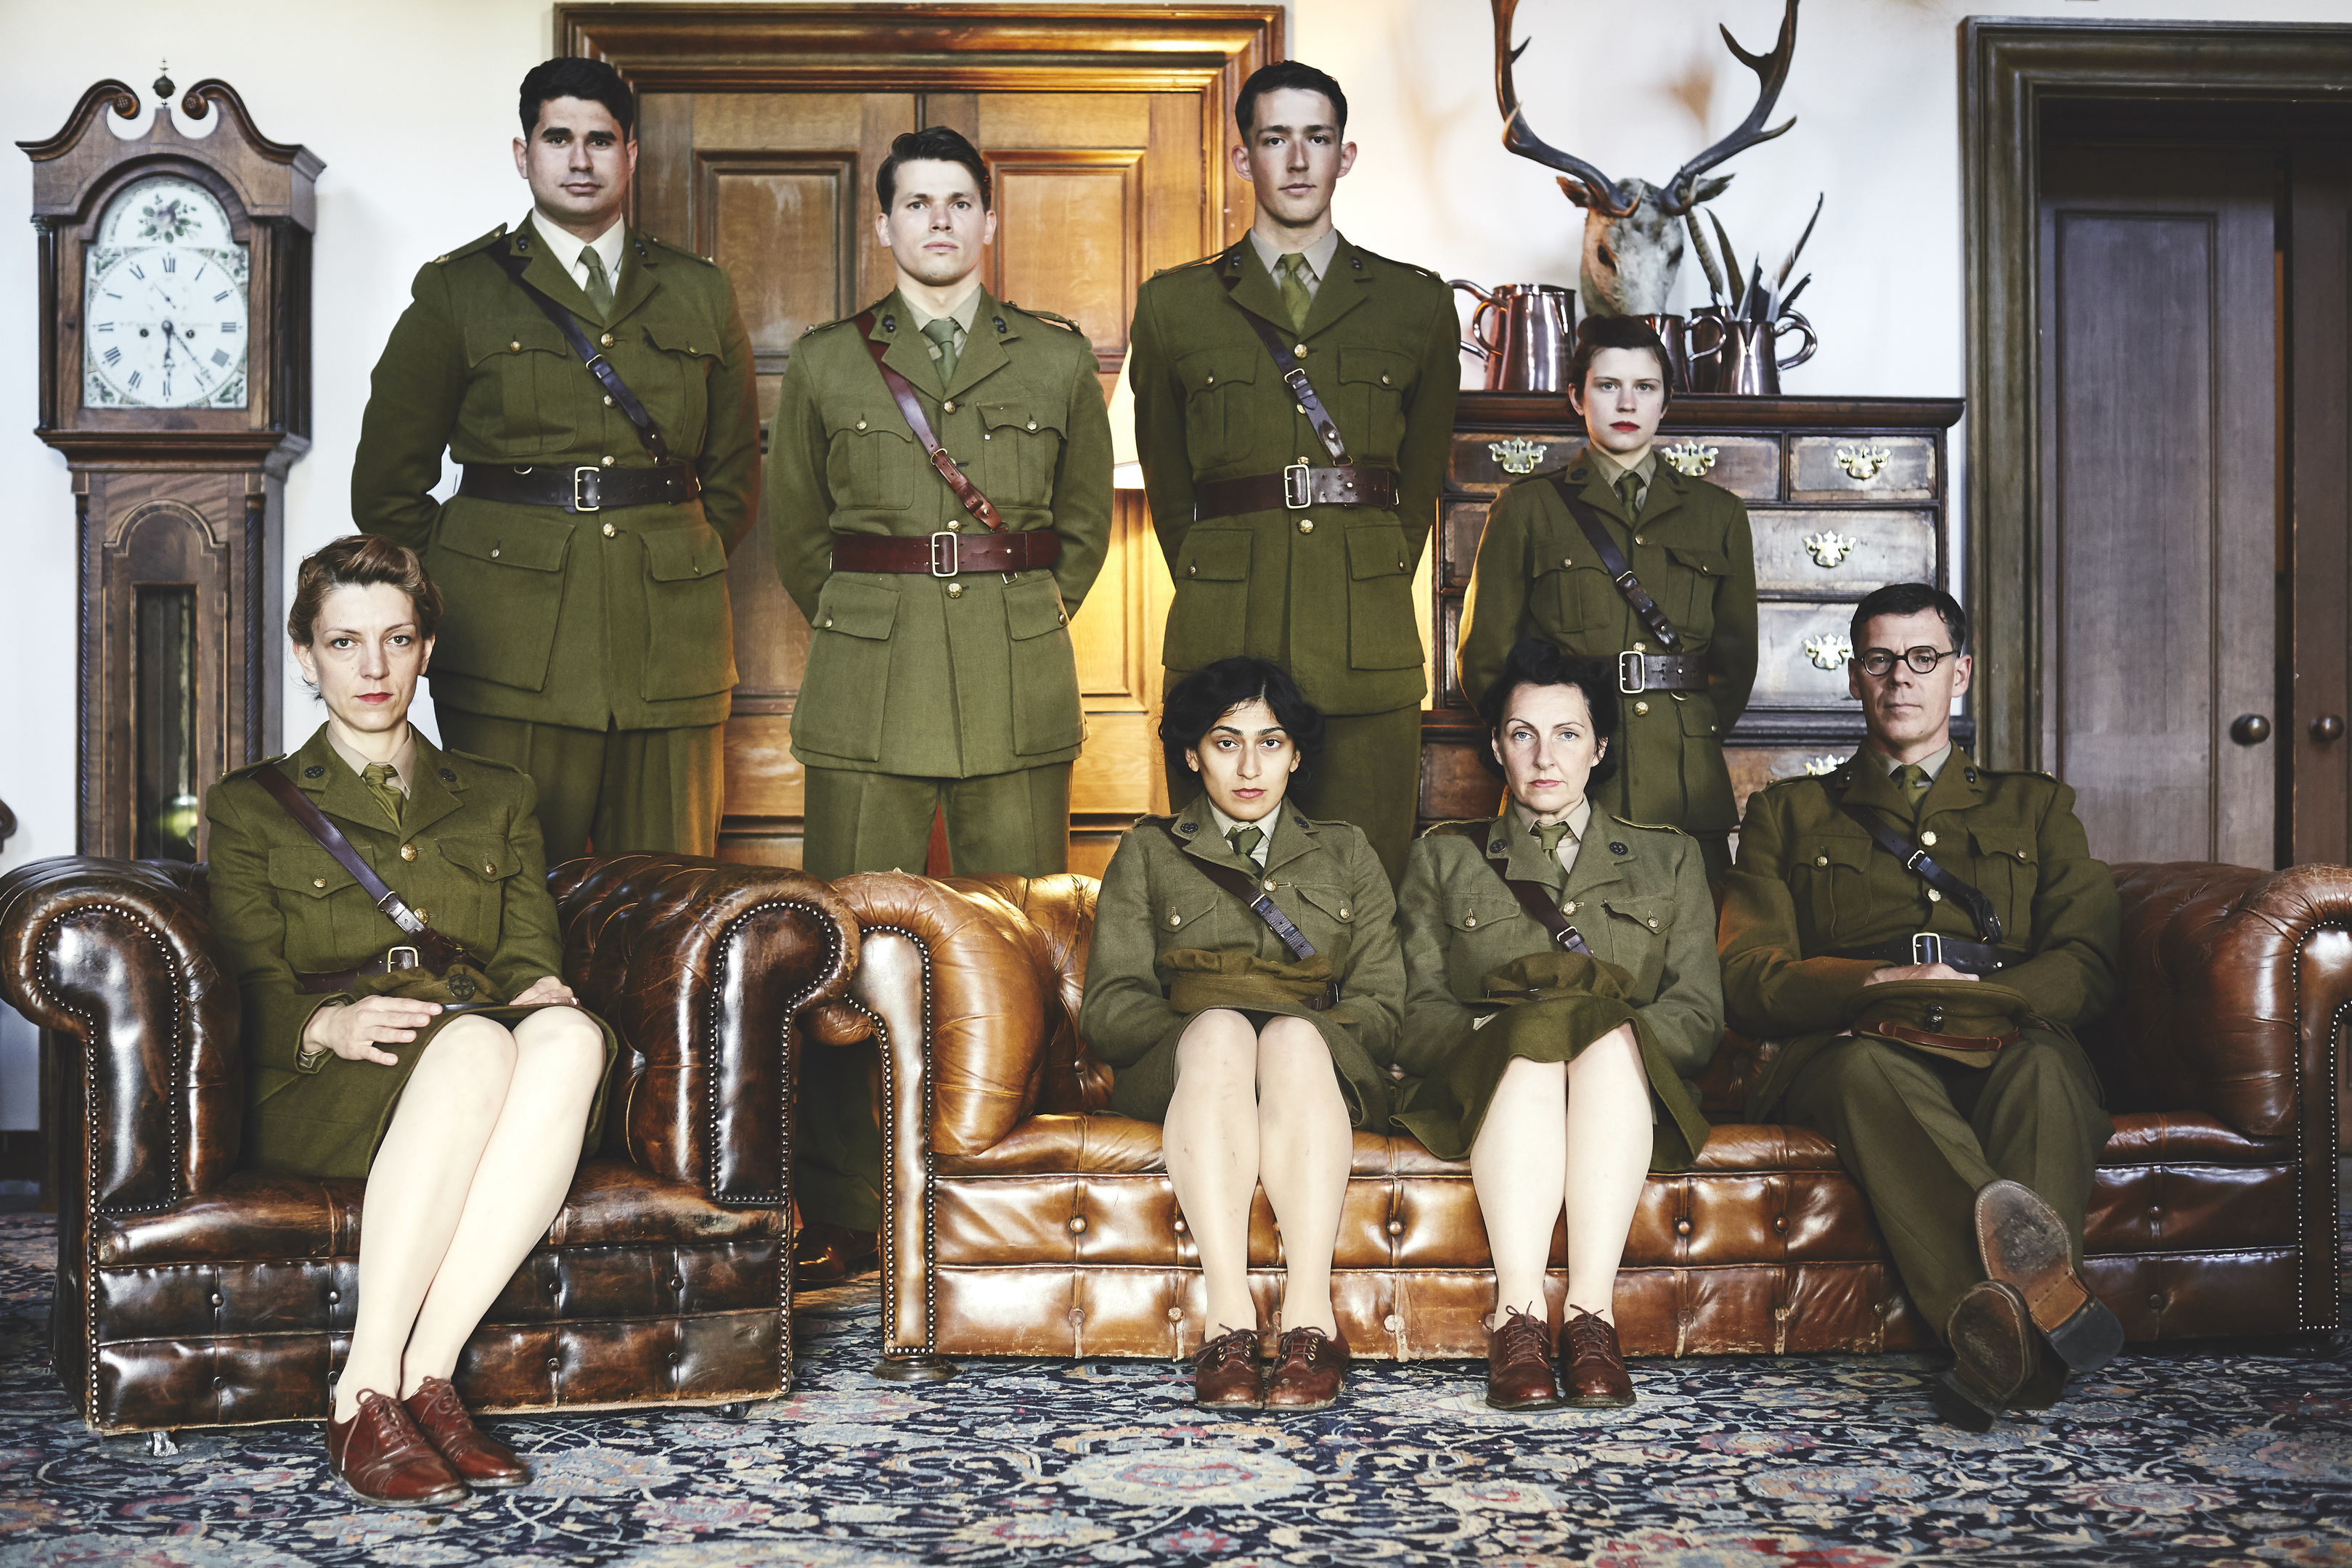 In this five-part immersive living history series, the training programme of one of World War Two's most covert organisations is being resurrected, having spent 60 years under lock and key.